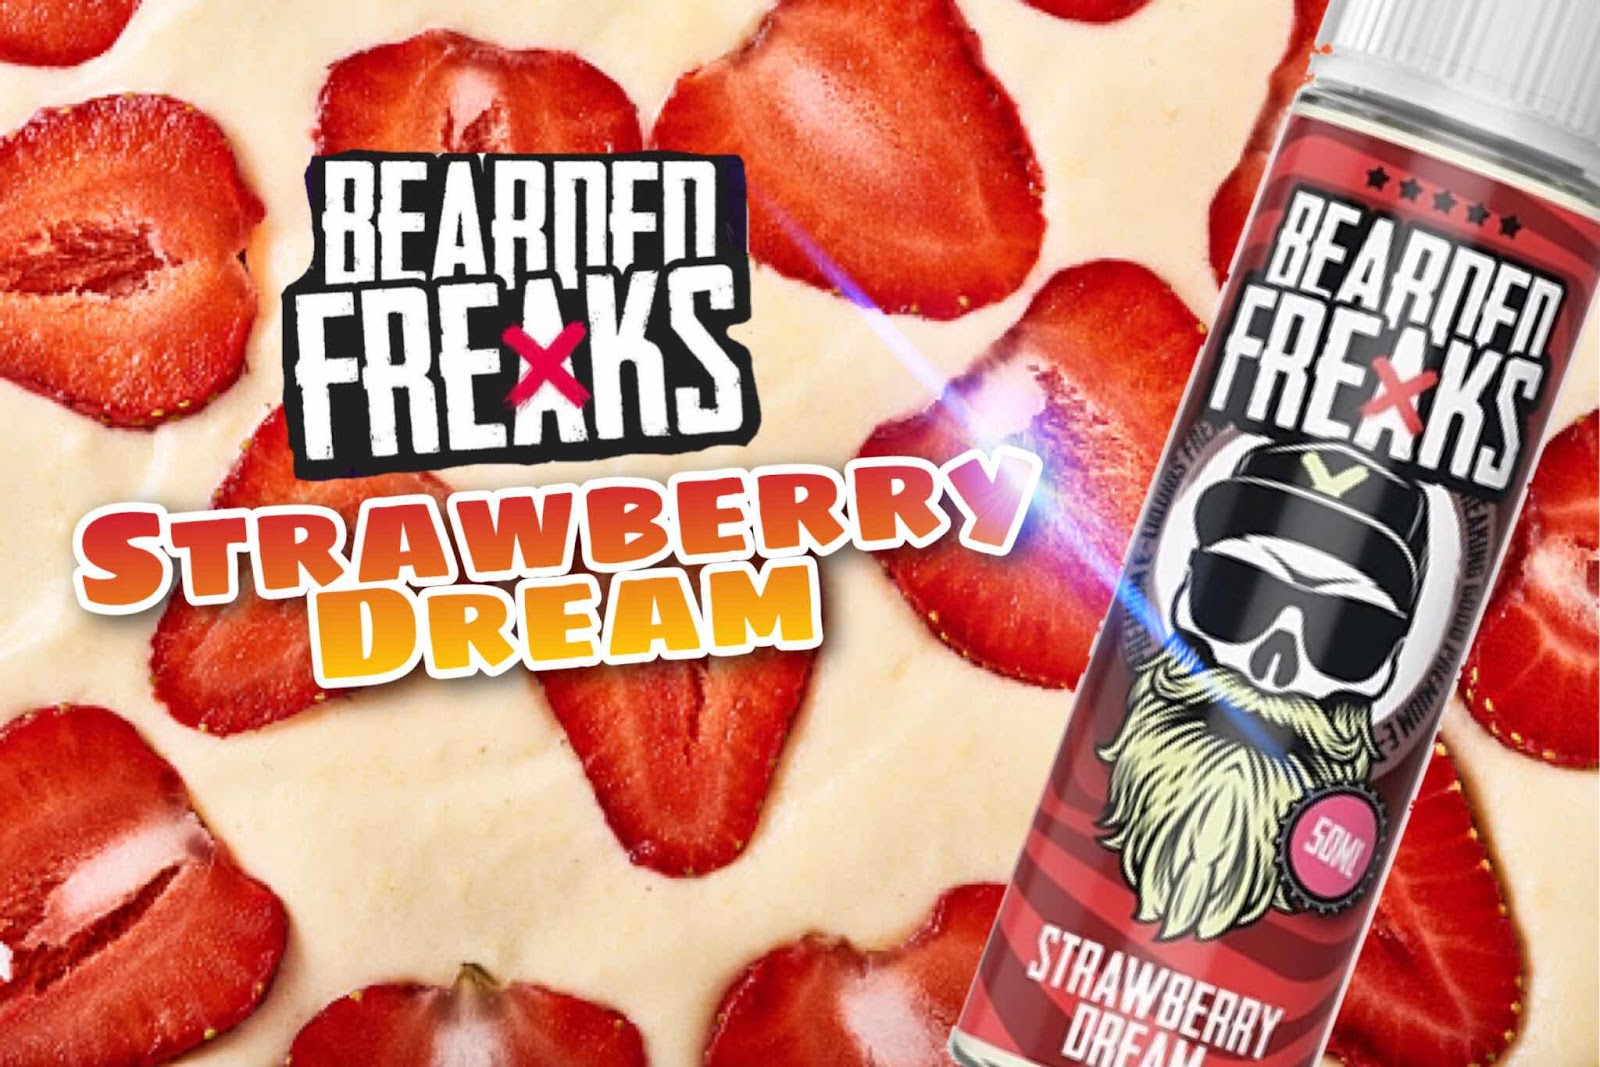 Review of Strawberry Dream Ejuice by Bearded Freaks